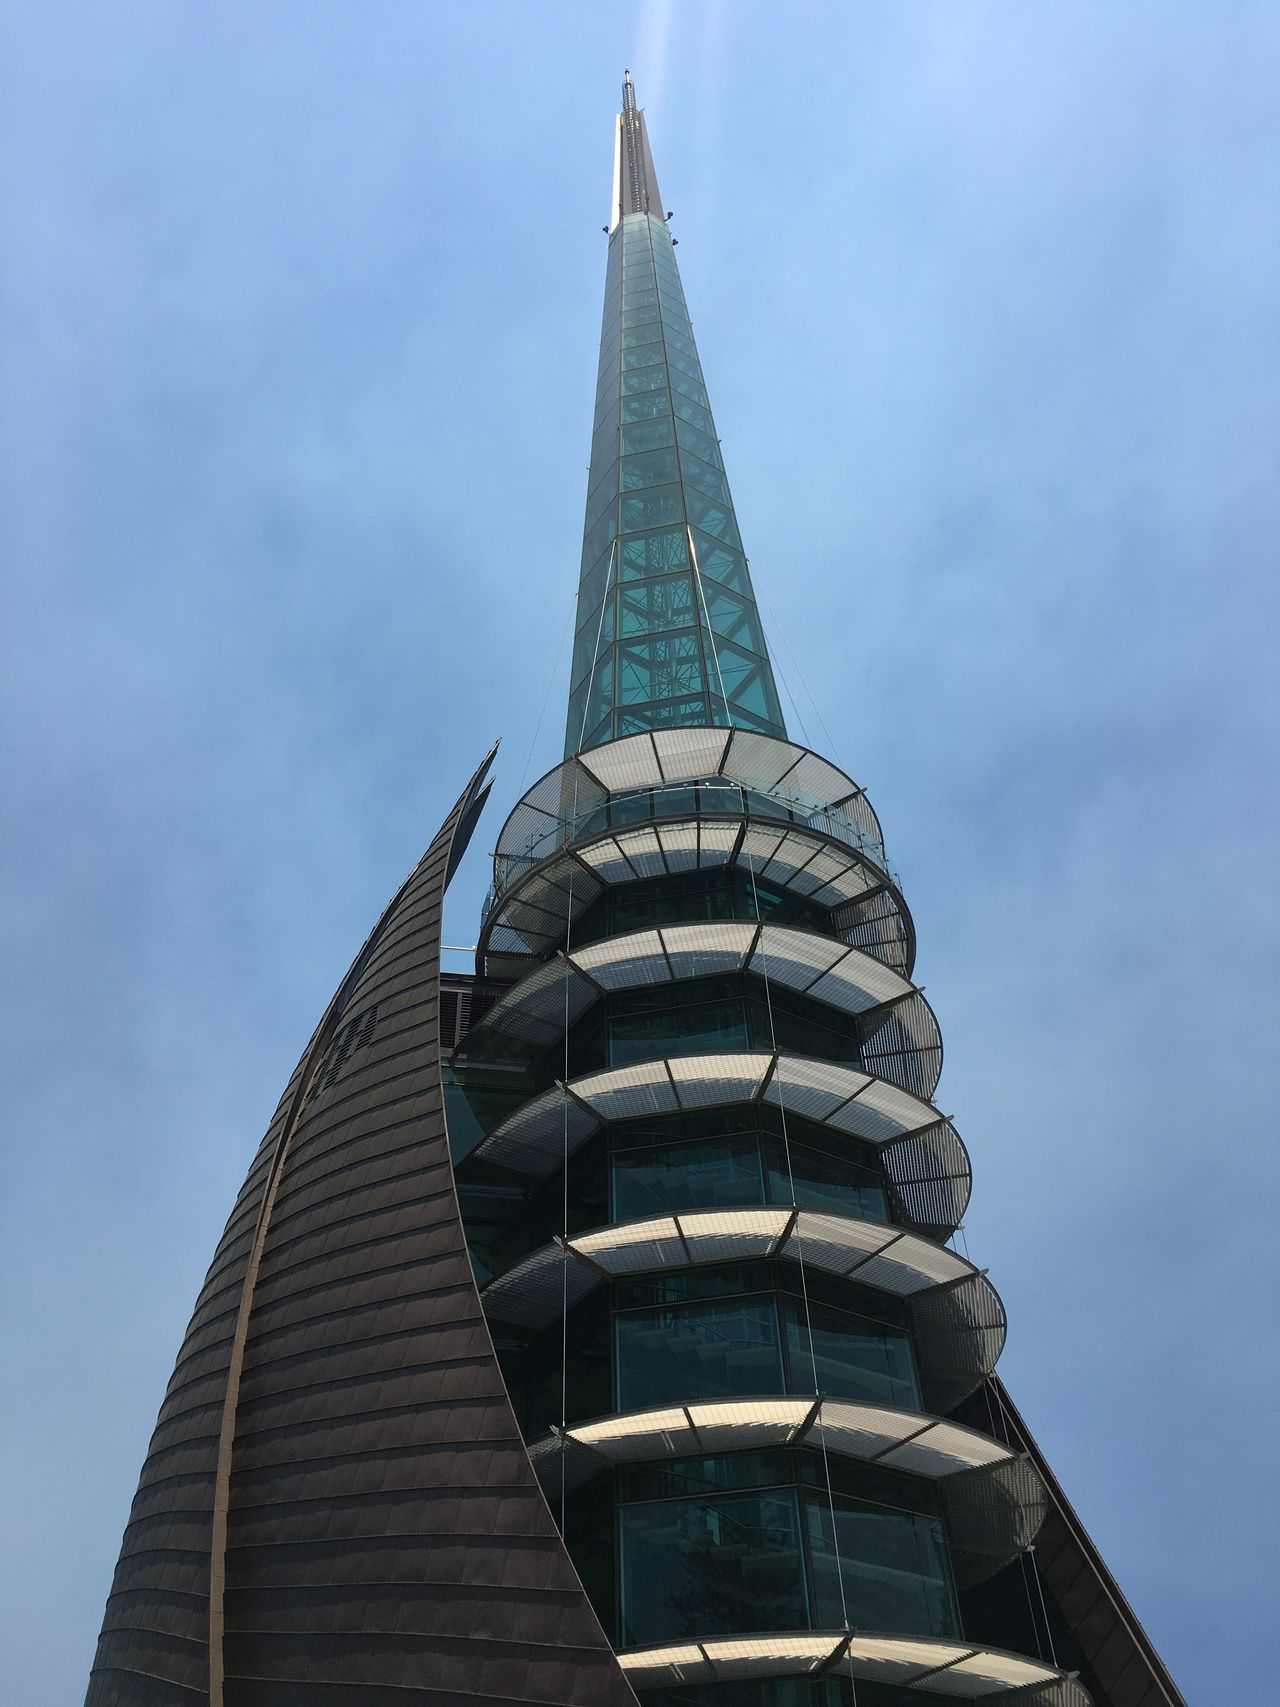 Built Structure Low Angle View Building Exterior Sky City Travel Destinations No People Skyscraper Bell Tower Perth Travel The Architect - 2017 EyeEm Awards